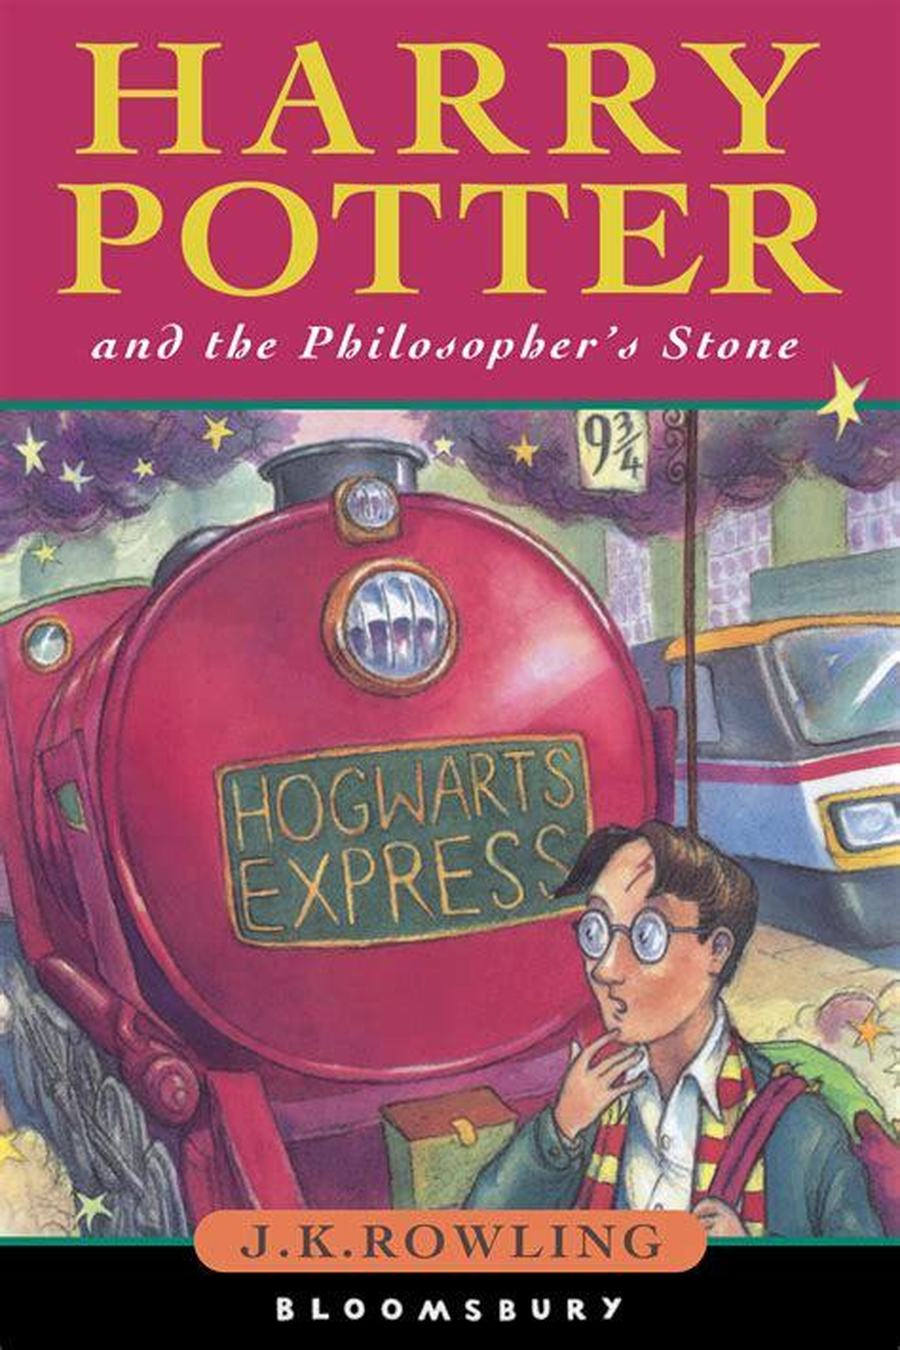 Harry Potter and the Philosopher's Stone - J.K.Rowling